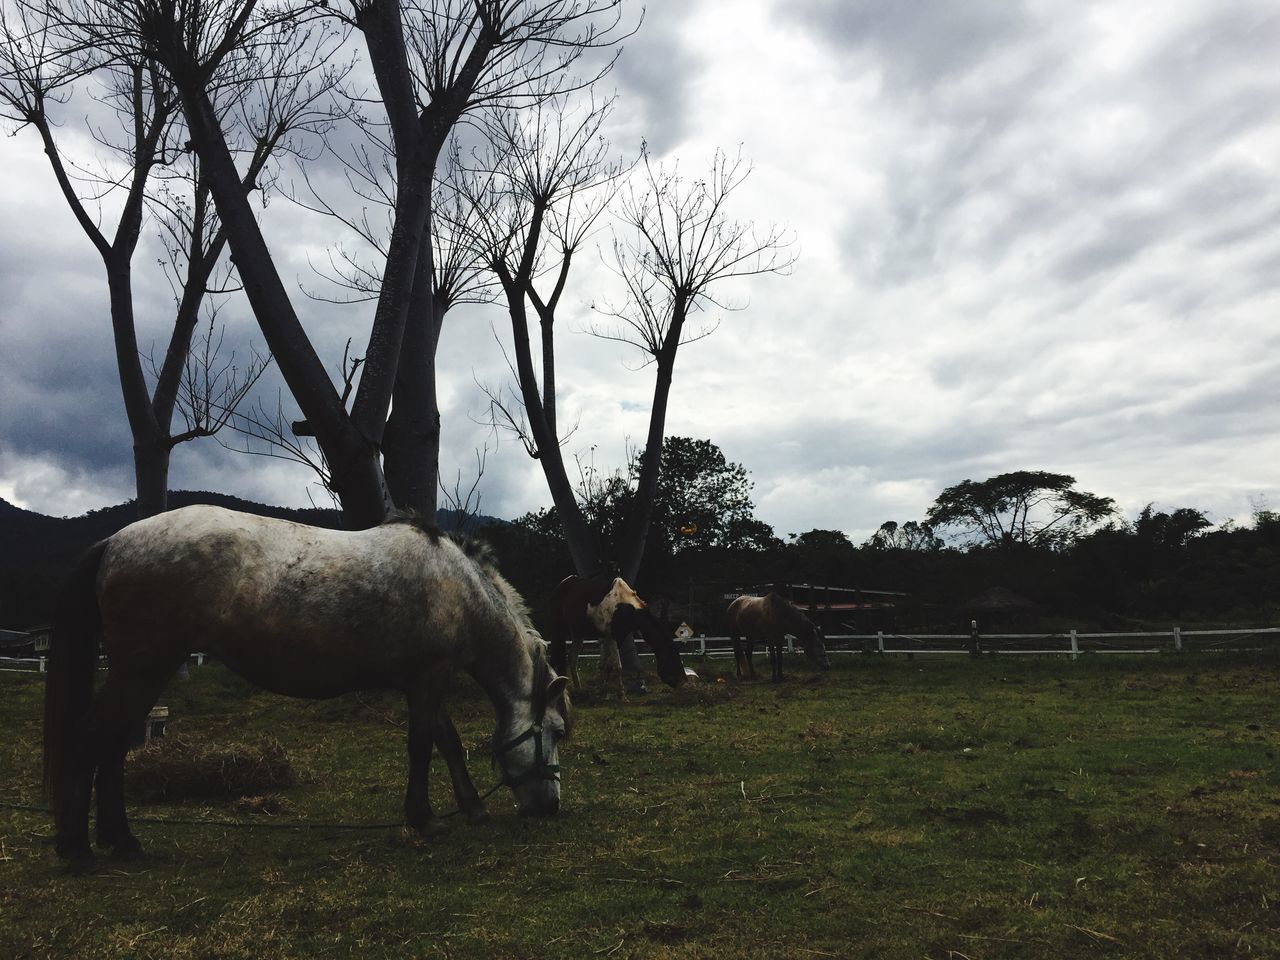 Cloud - Sky Tree Sky Domestic Animals Animal Themes Field Bare Tree Outdoors No People Mammal Livestock Horse Nature Landscape Grass Day